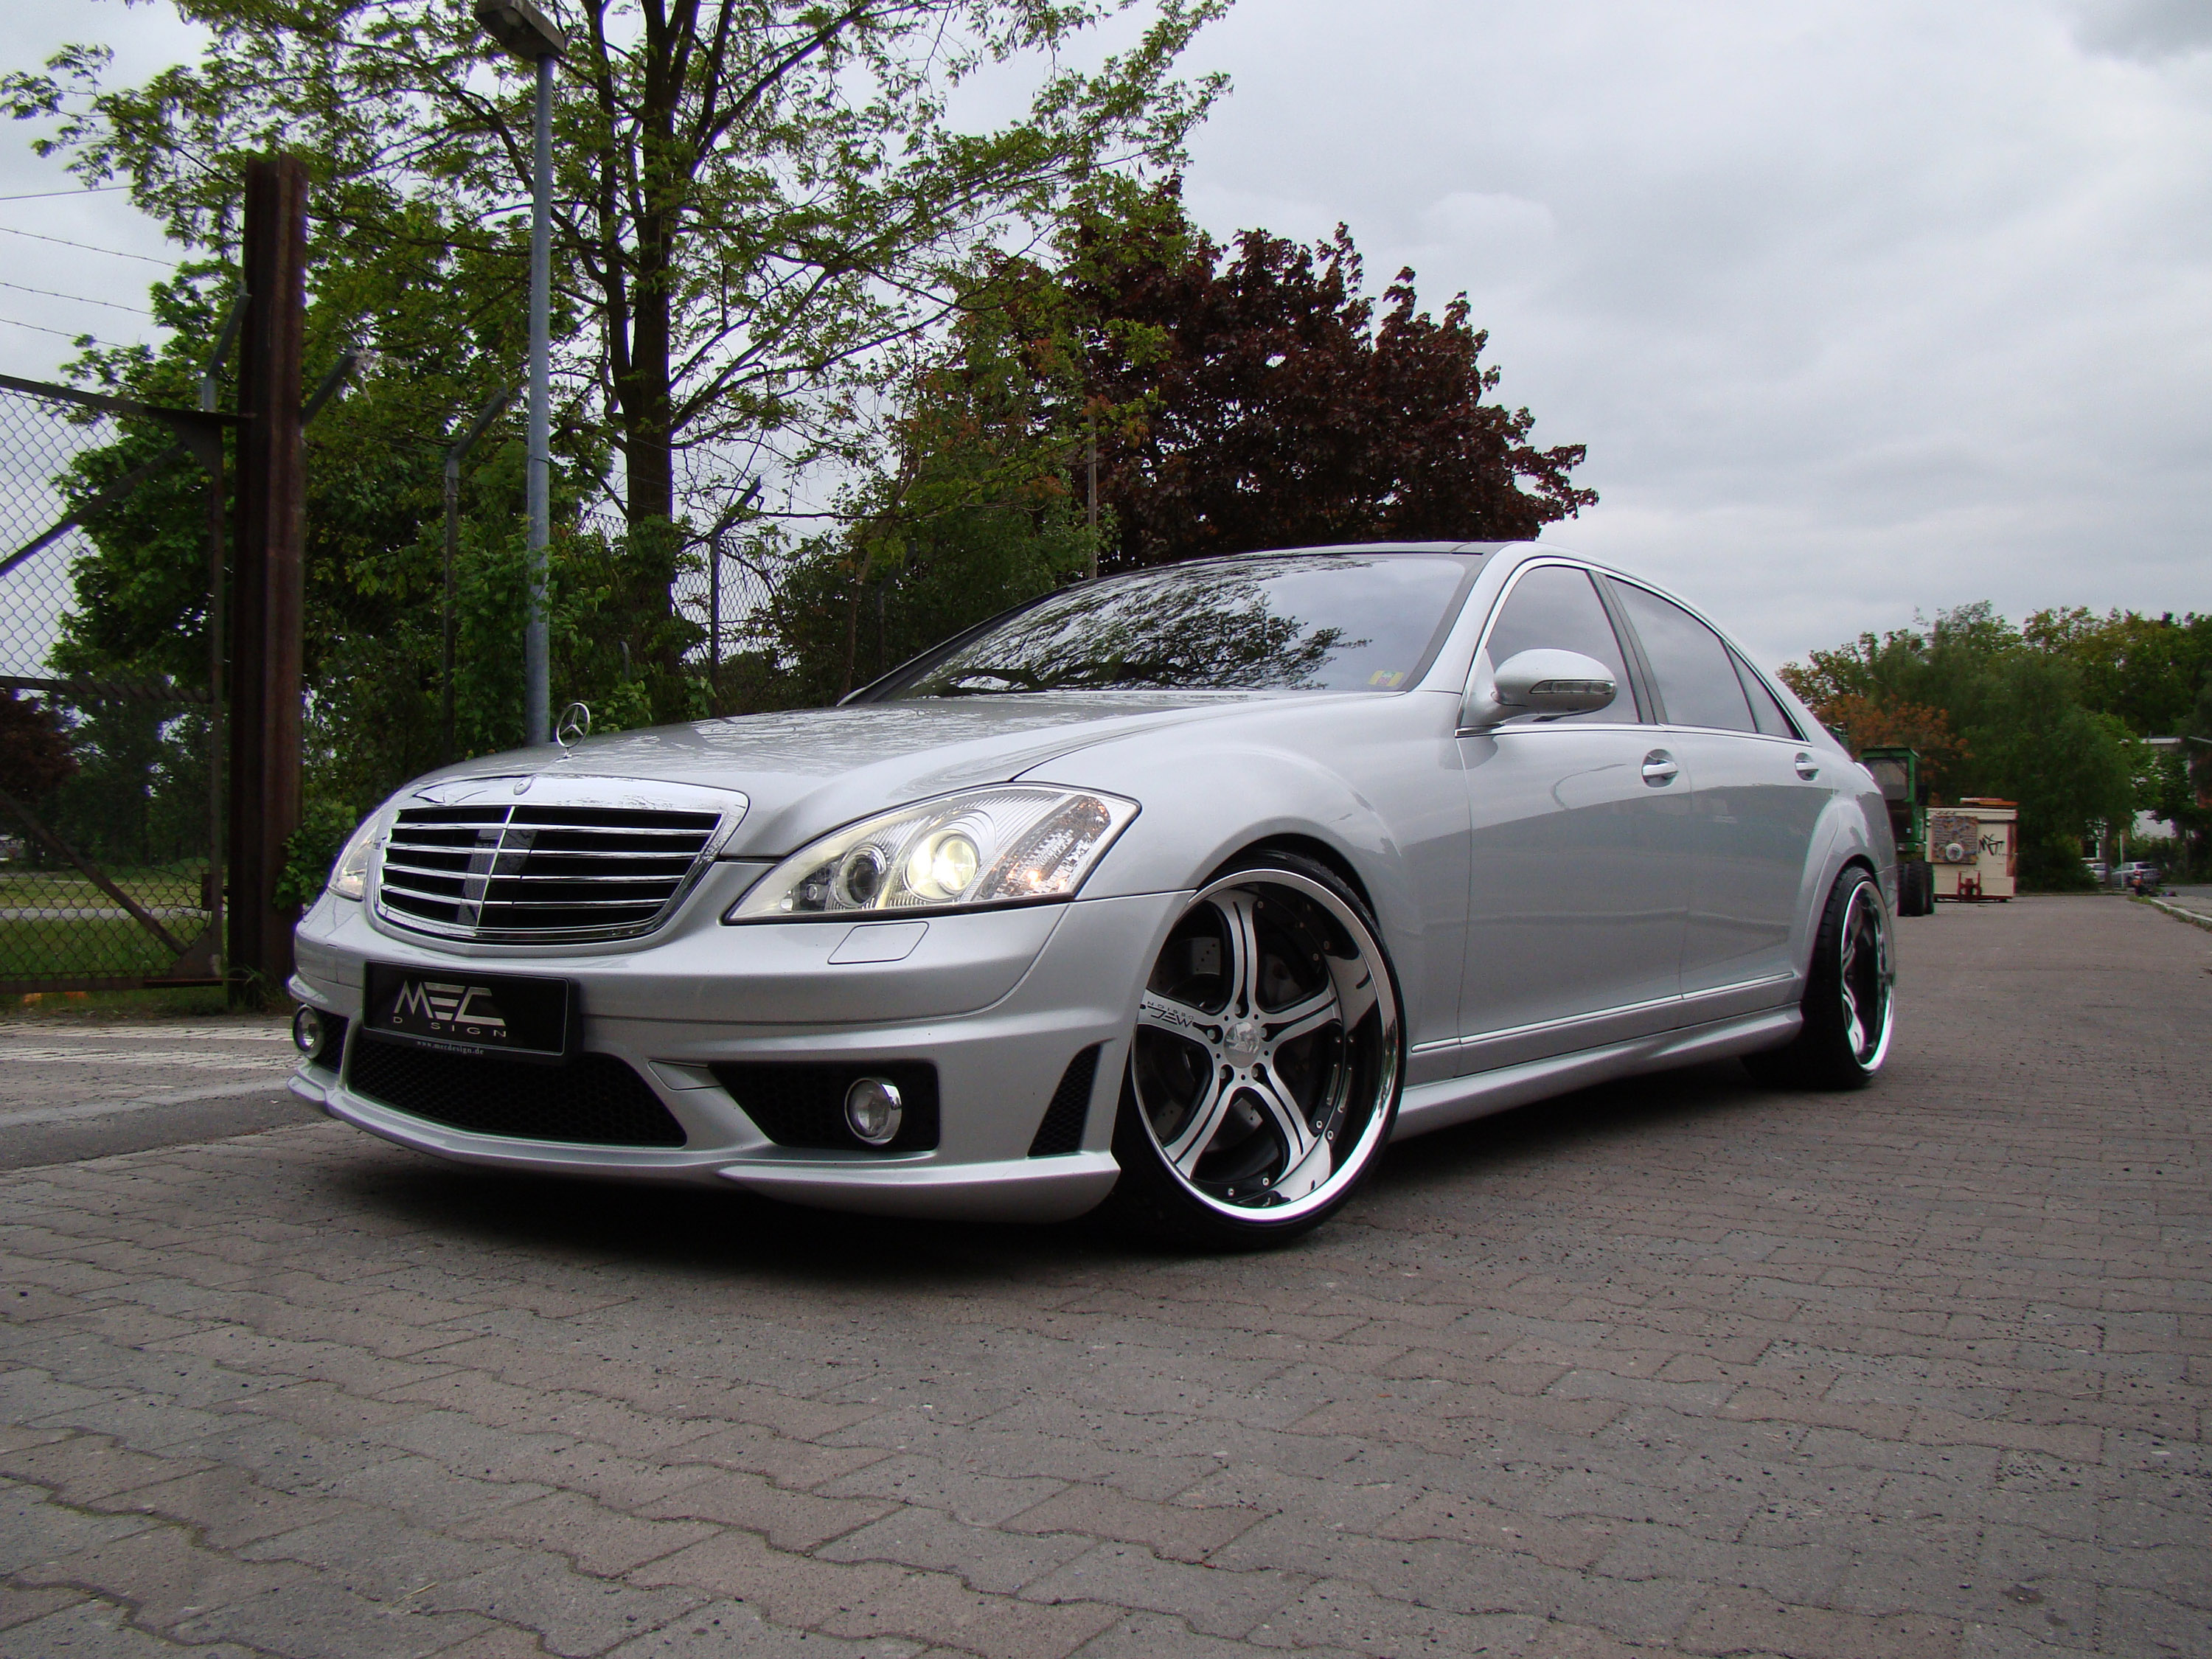 Mercedes benz s 550 photos news reviews specs car for Mercedes benz glowing star